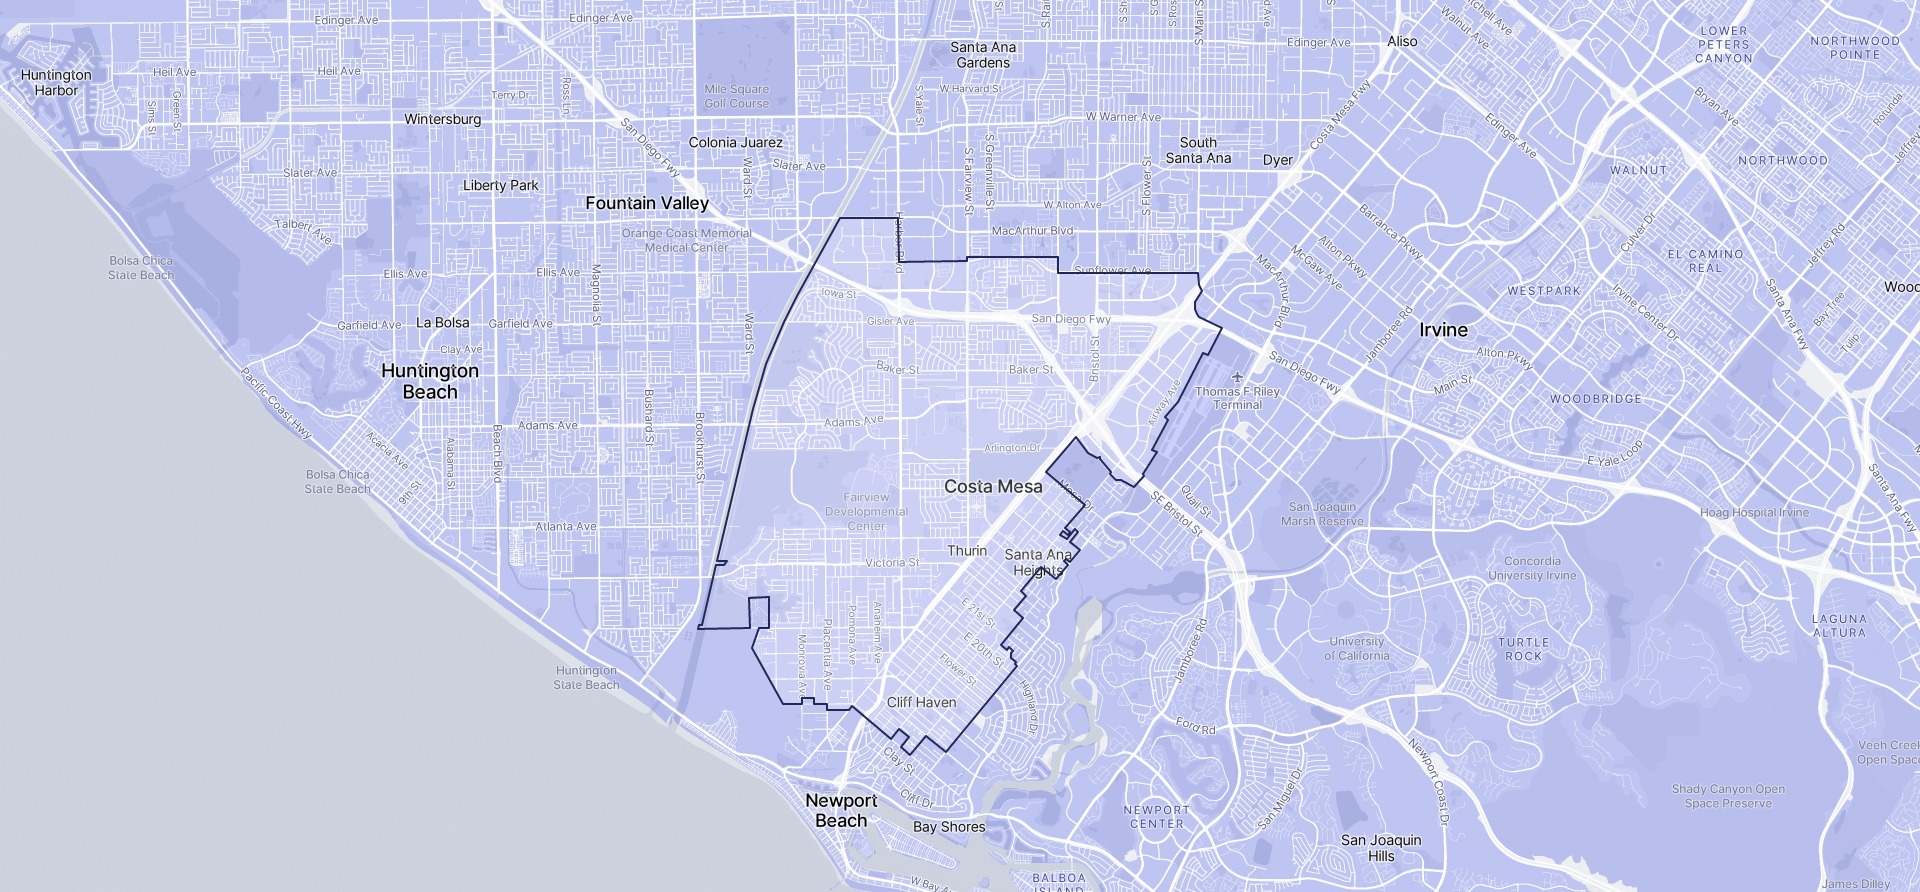 Image of Costa Mesa boundaries on a map.